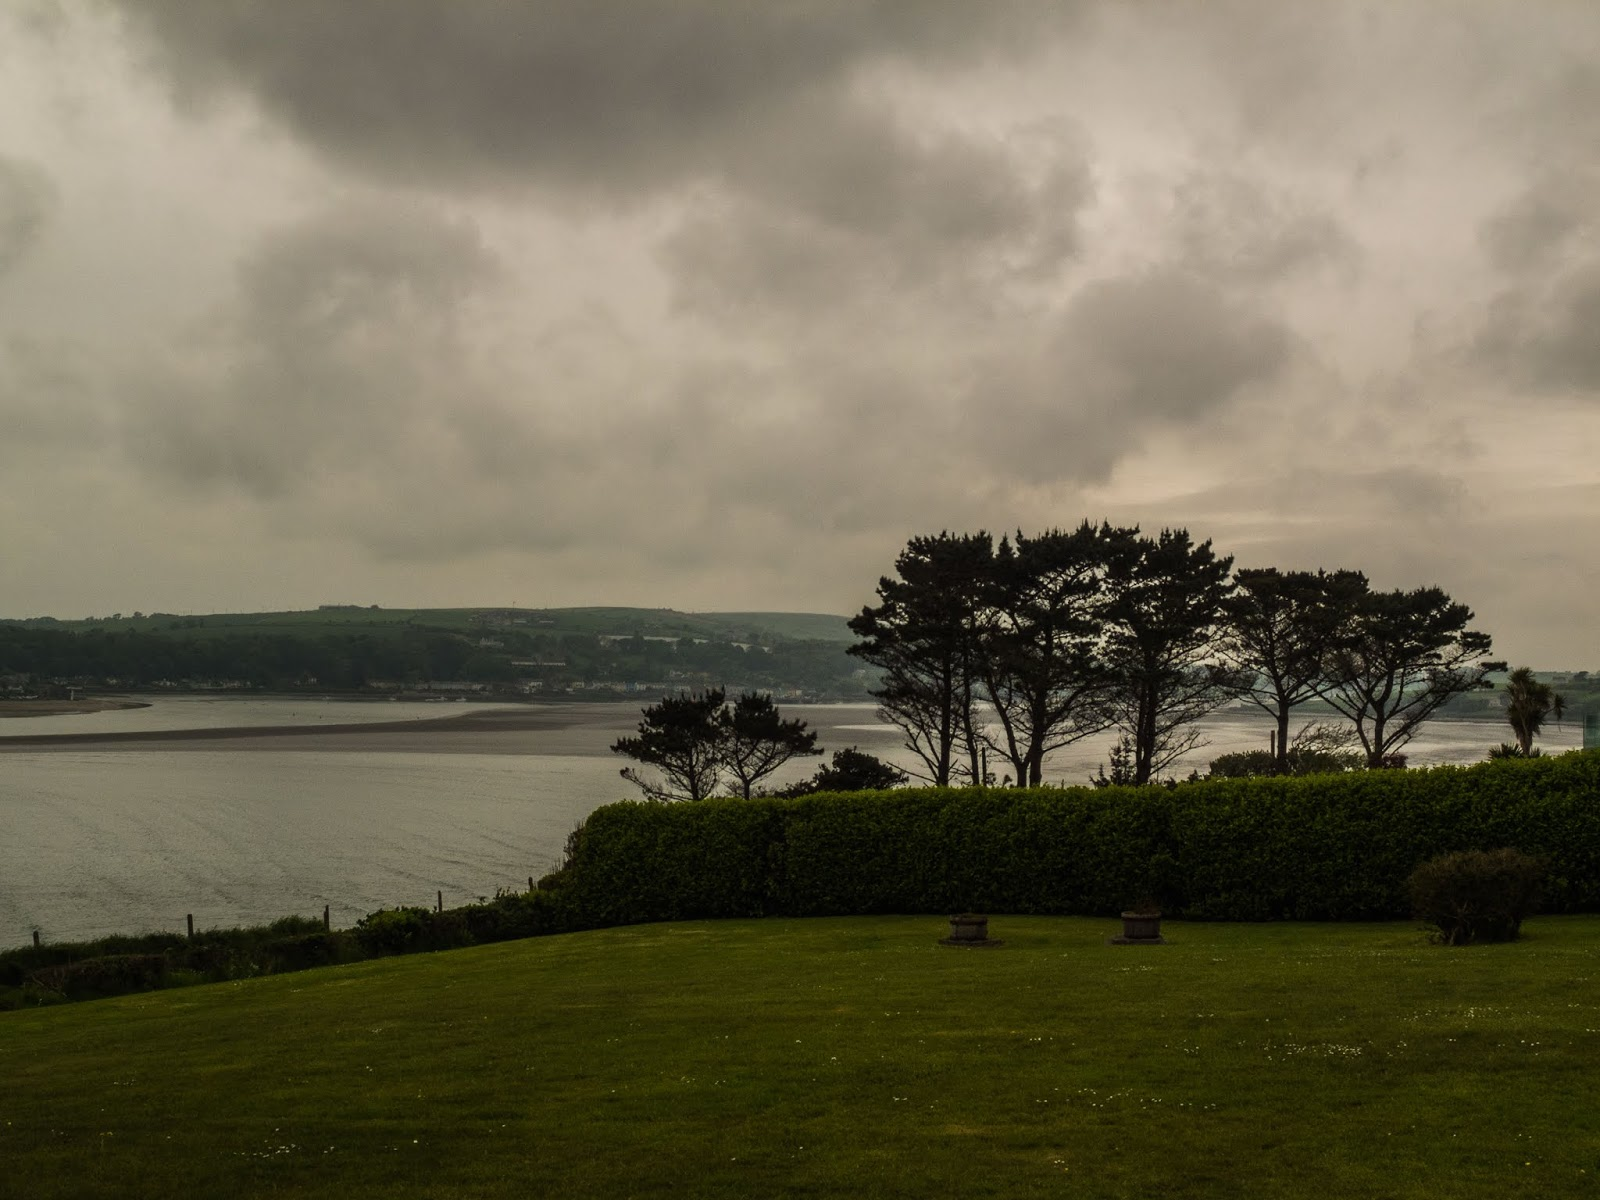 Looking to Courtmacsherry from Kilbrittain Co.Cork on a gloomy, grey day.